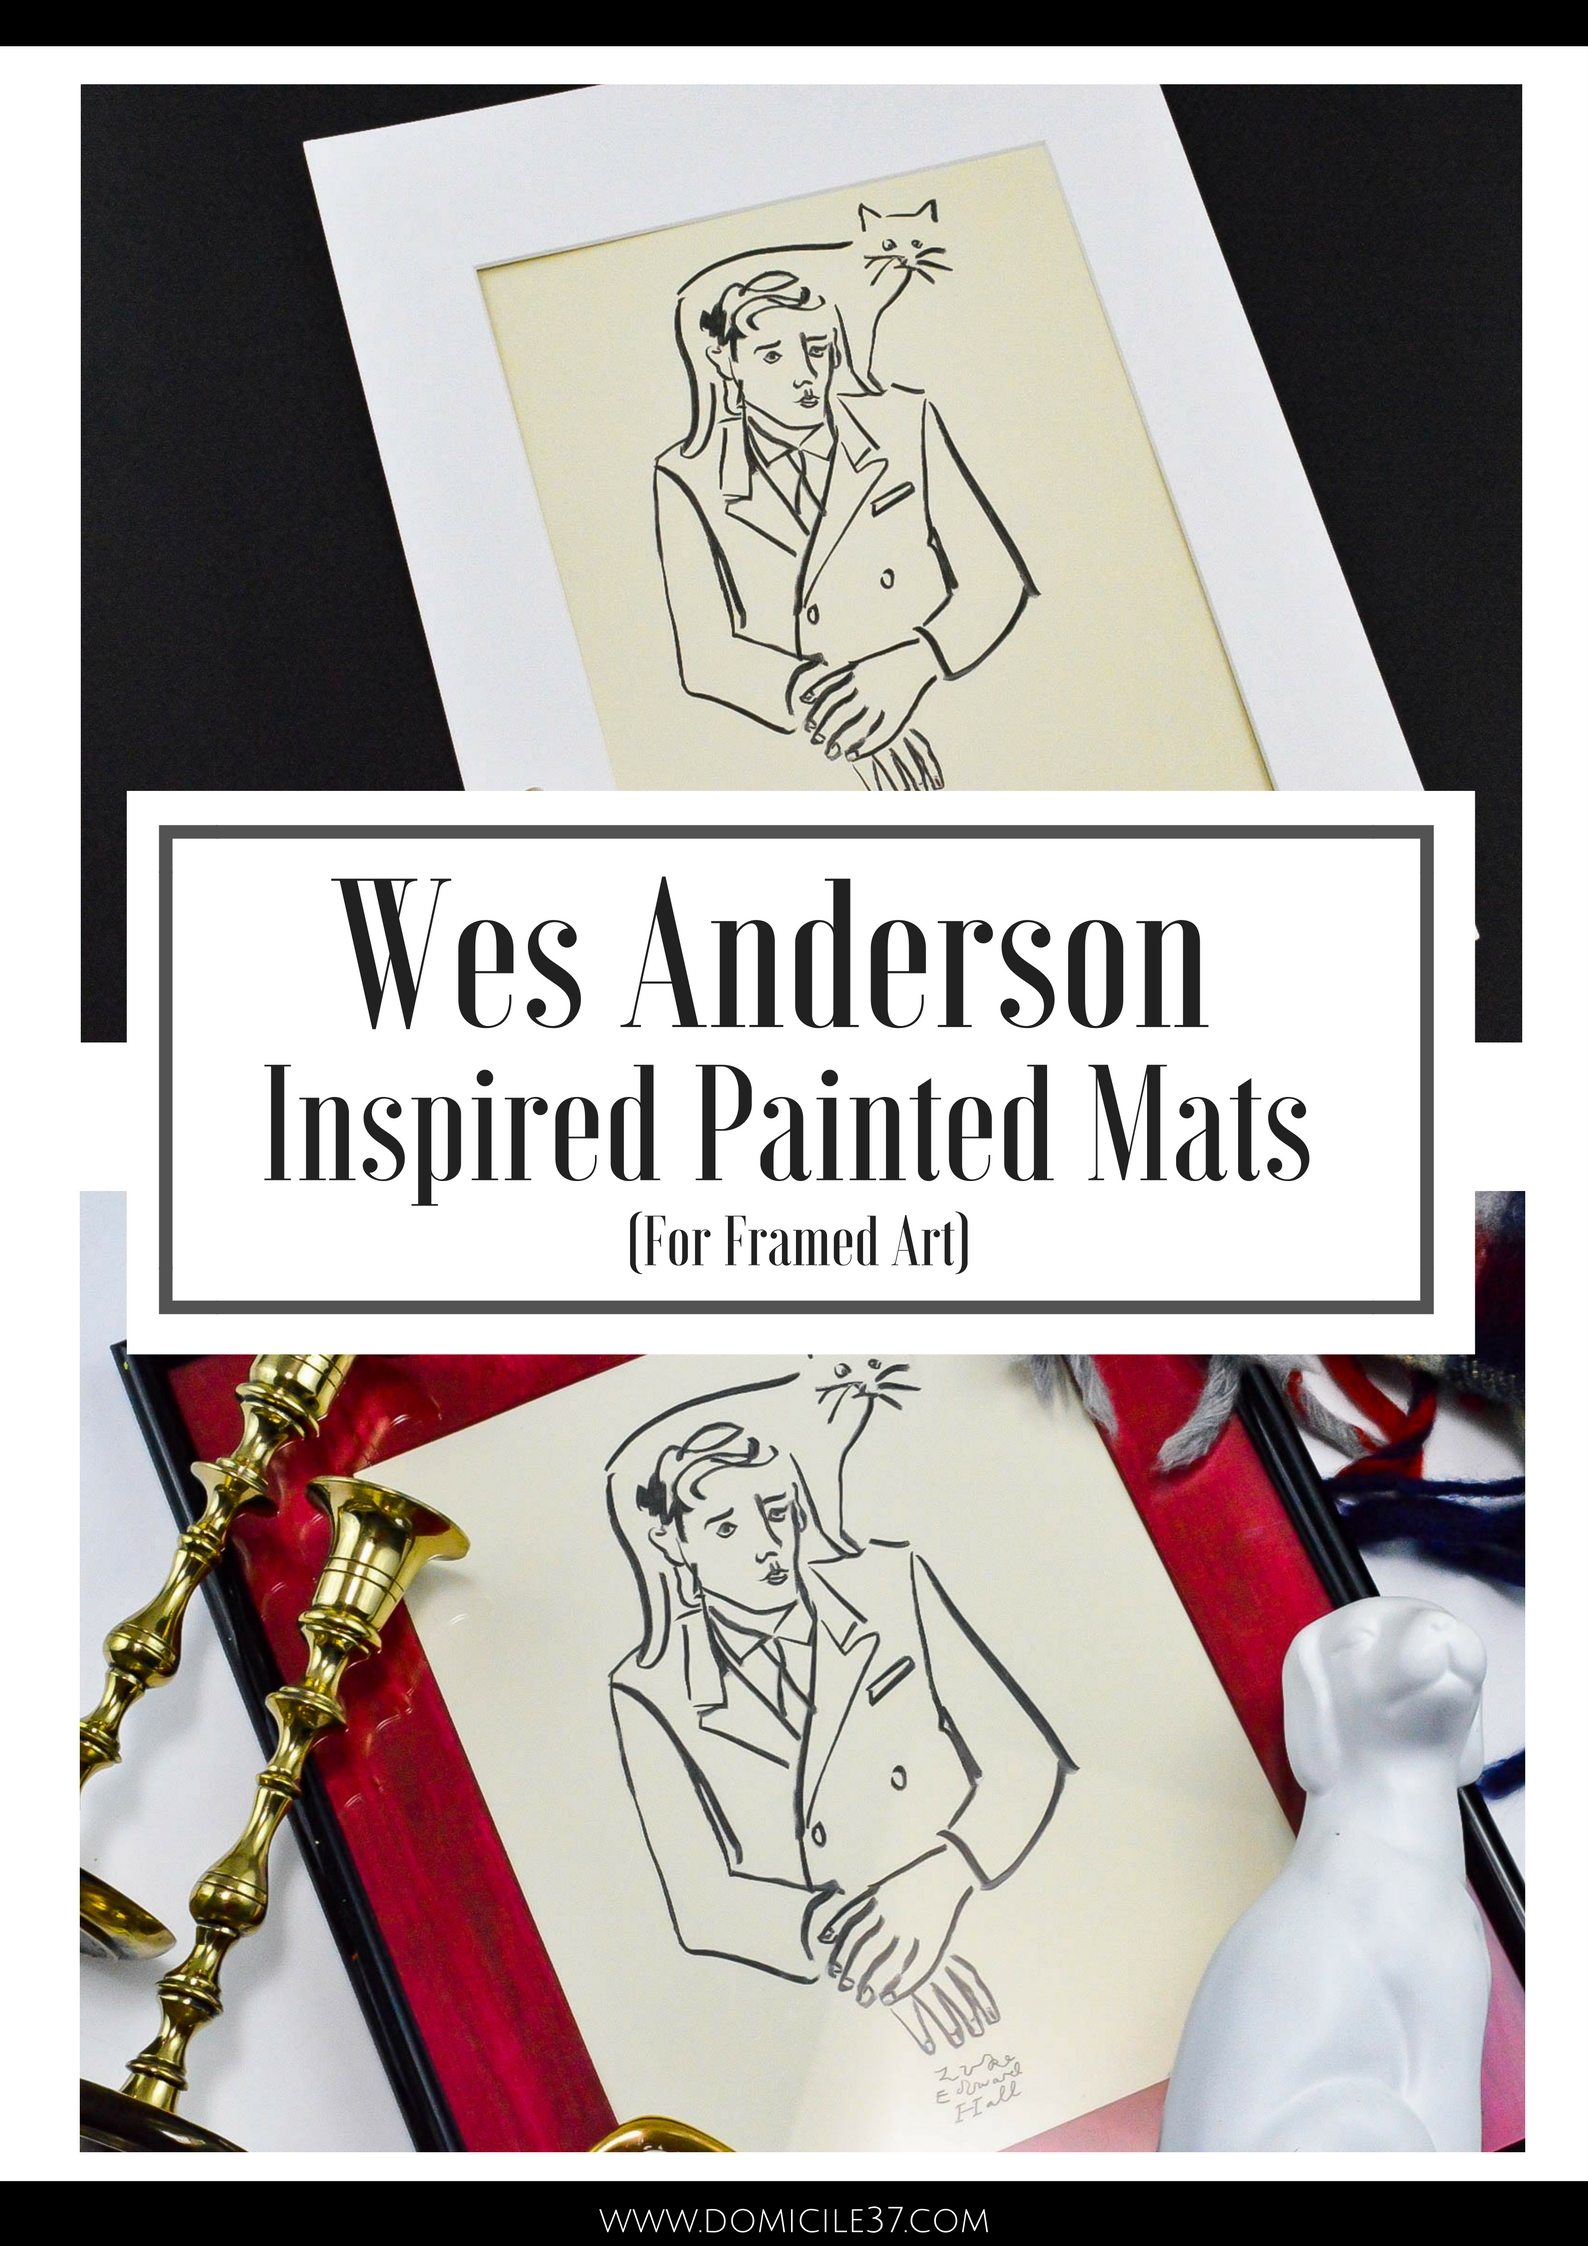 Wes Anderson Inspired Painted Mats for pictures | Luke Edward Hall Printable | Deco Art Painted Mats | Whimsical Art prints | Painted Colored Mats